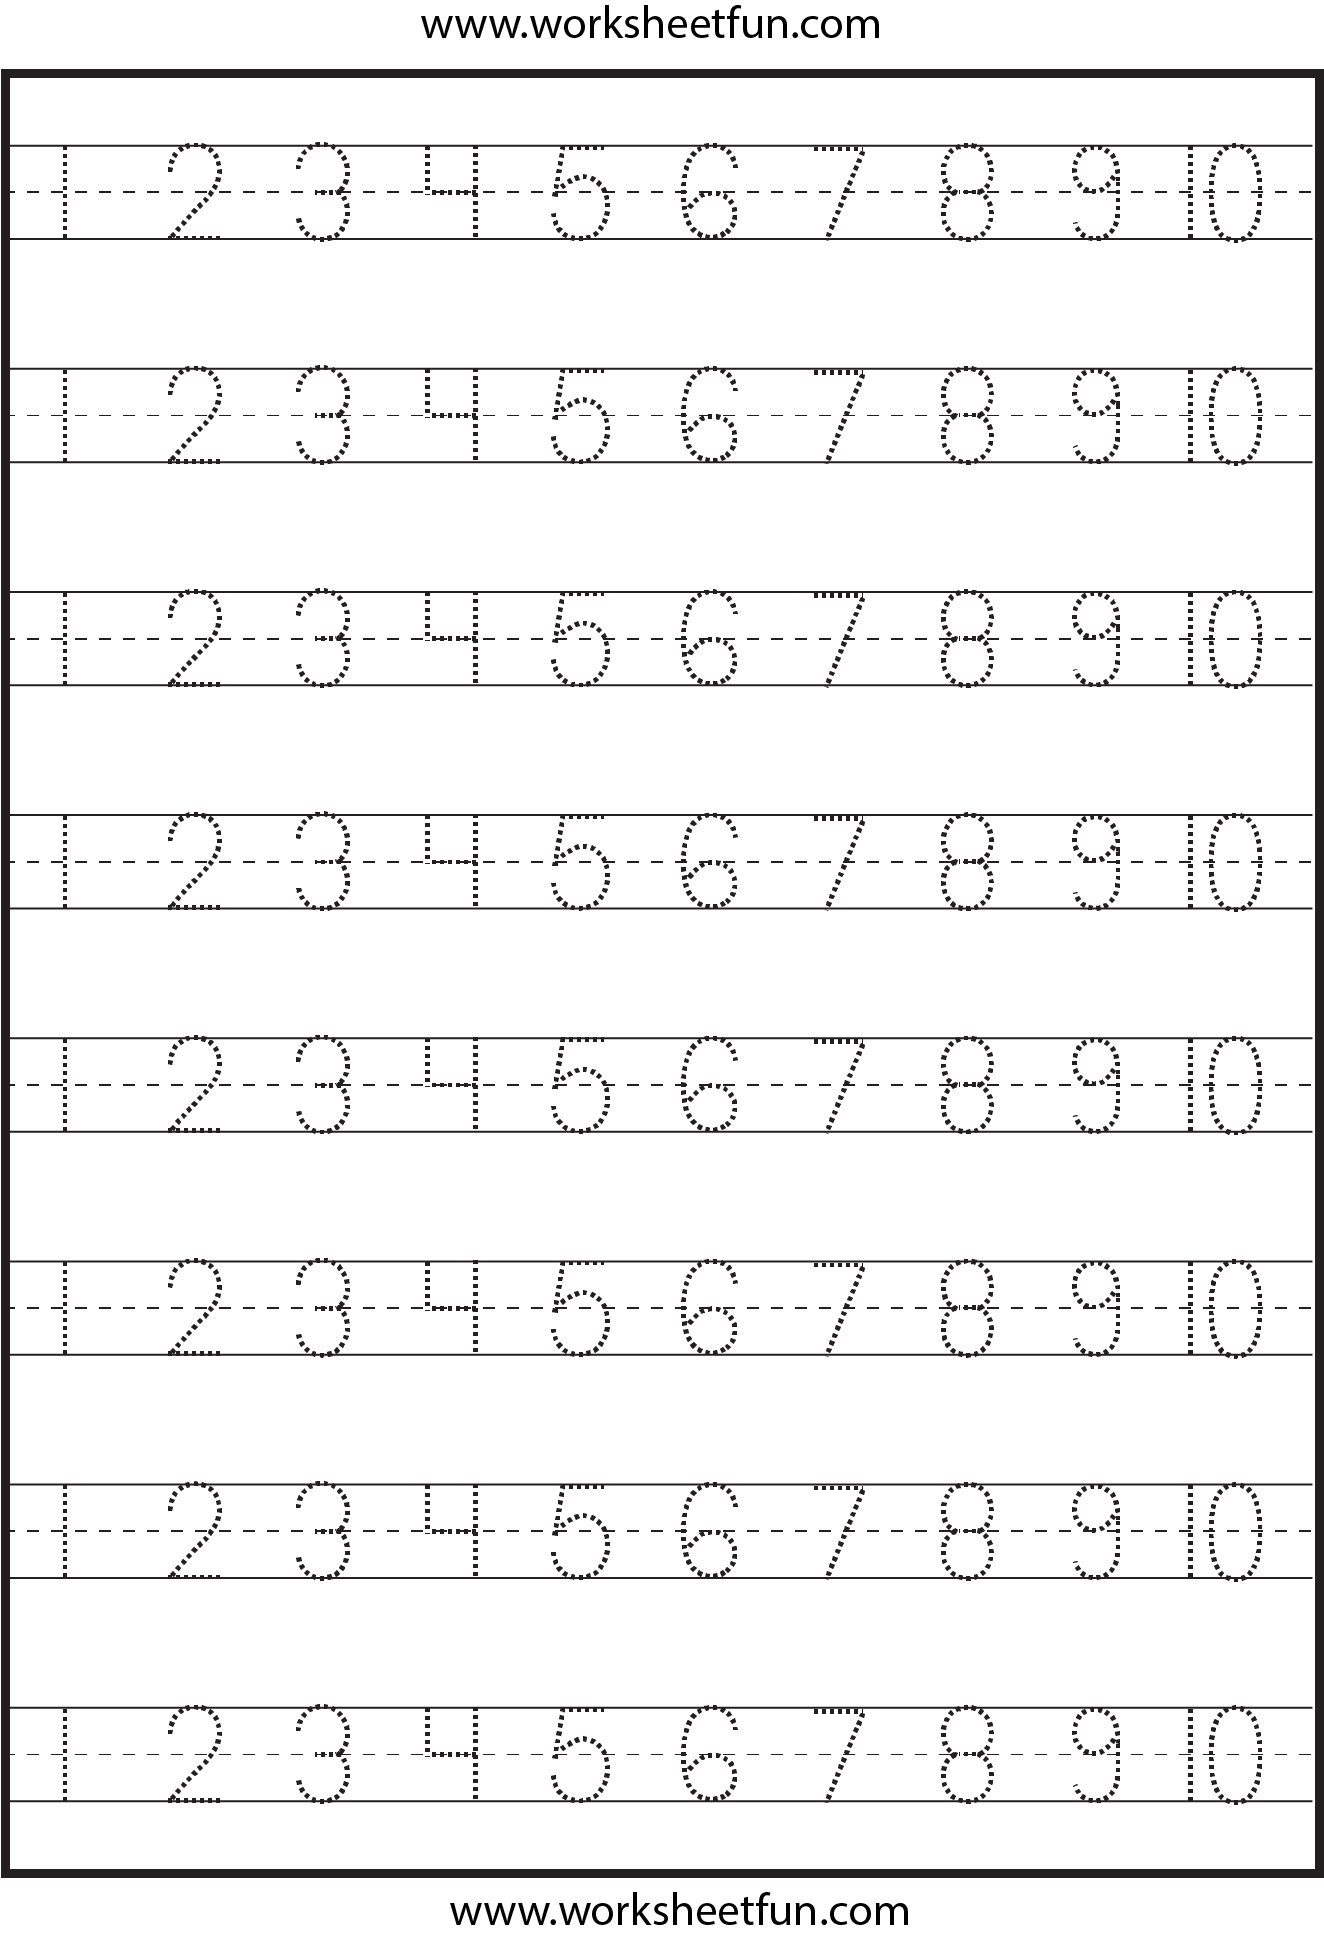 worksheet Free Kindergarten Number Worksheets number tracing 1 10 worksheet free printable worksheets tracing